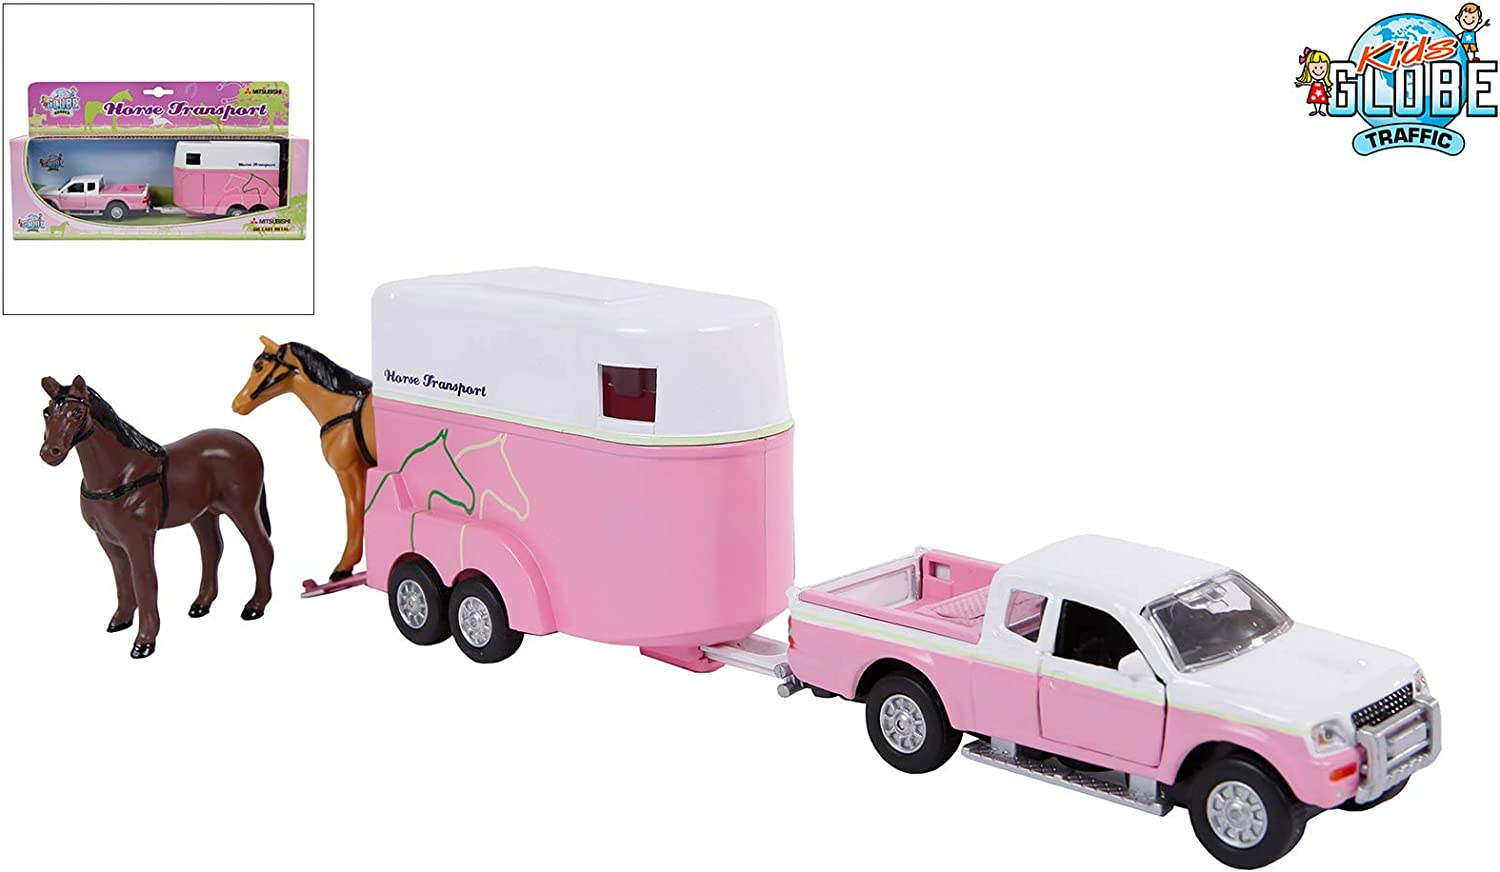 Van Manen Kids Globe Traffic Set con Juguete Auto y Caballos Colgante, Juguete, Color Rosa/Blanco, para Chica, retráctil Motor, 520124